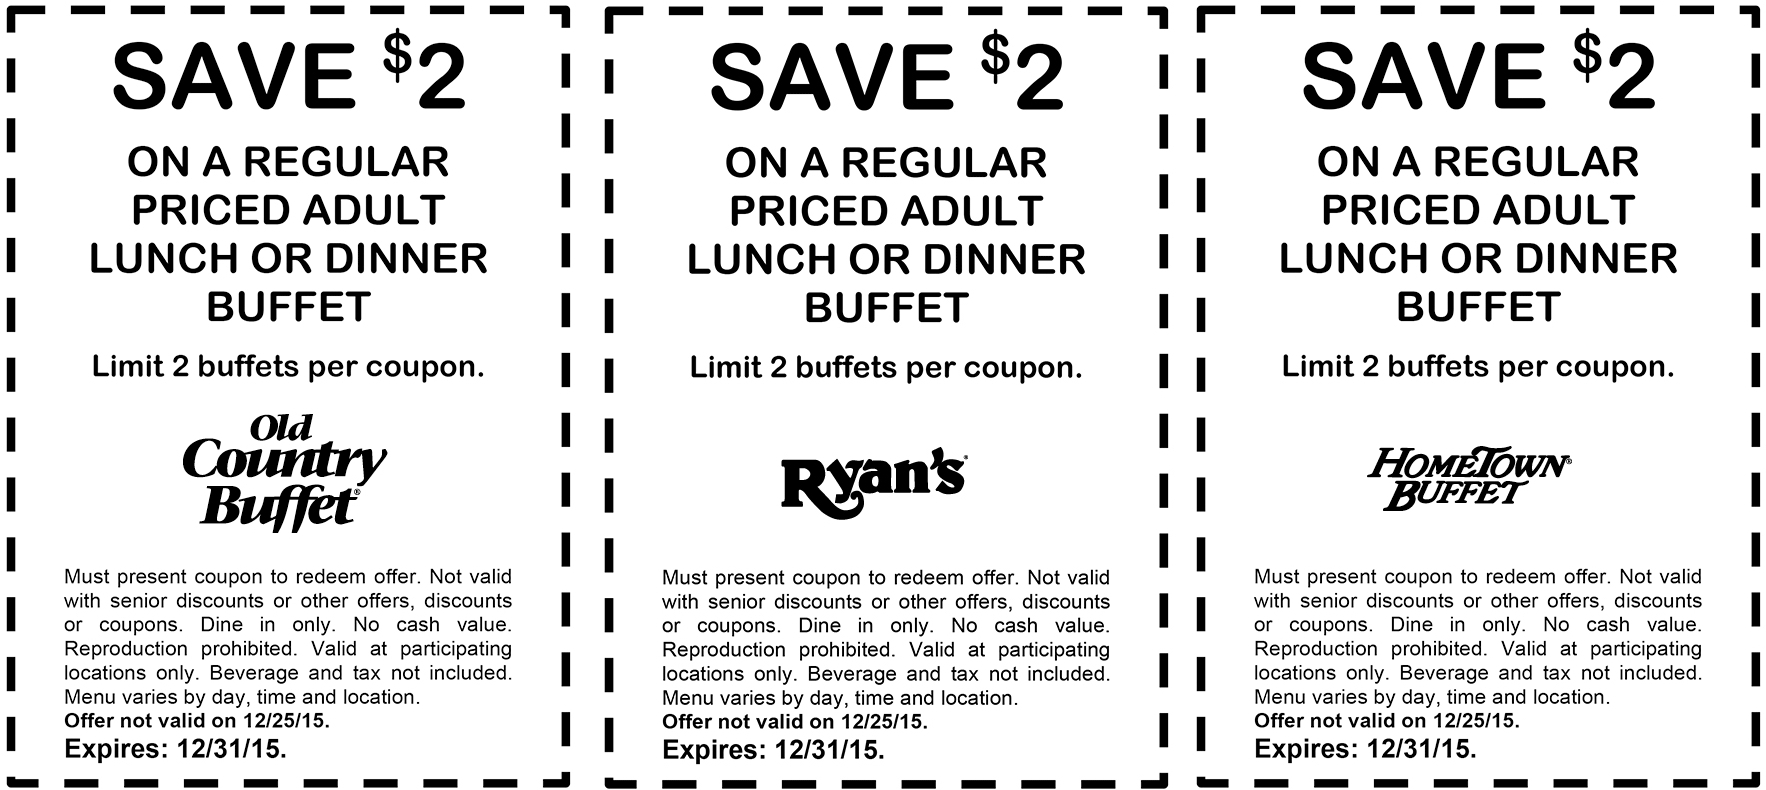 Old Country Buffet Coupons - $2 Off Your Buffet At Ryans, Hometown - Old Country Buffet Printable Coupons Buy One Get One Free